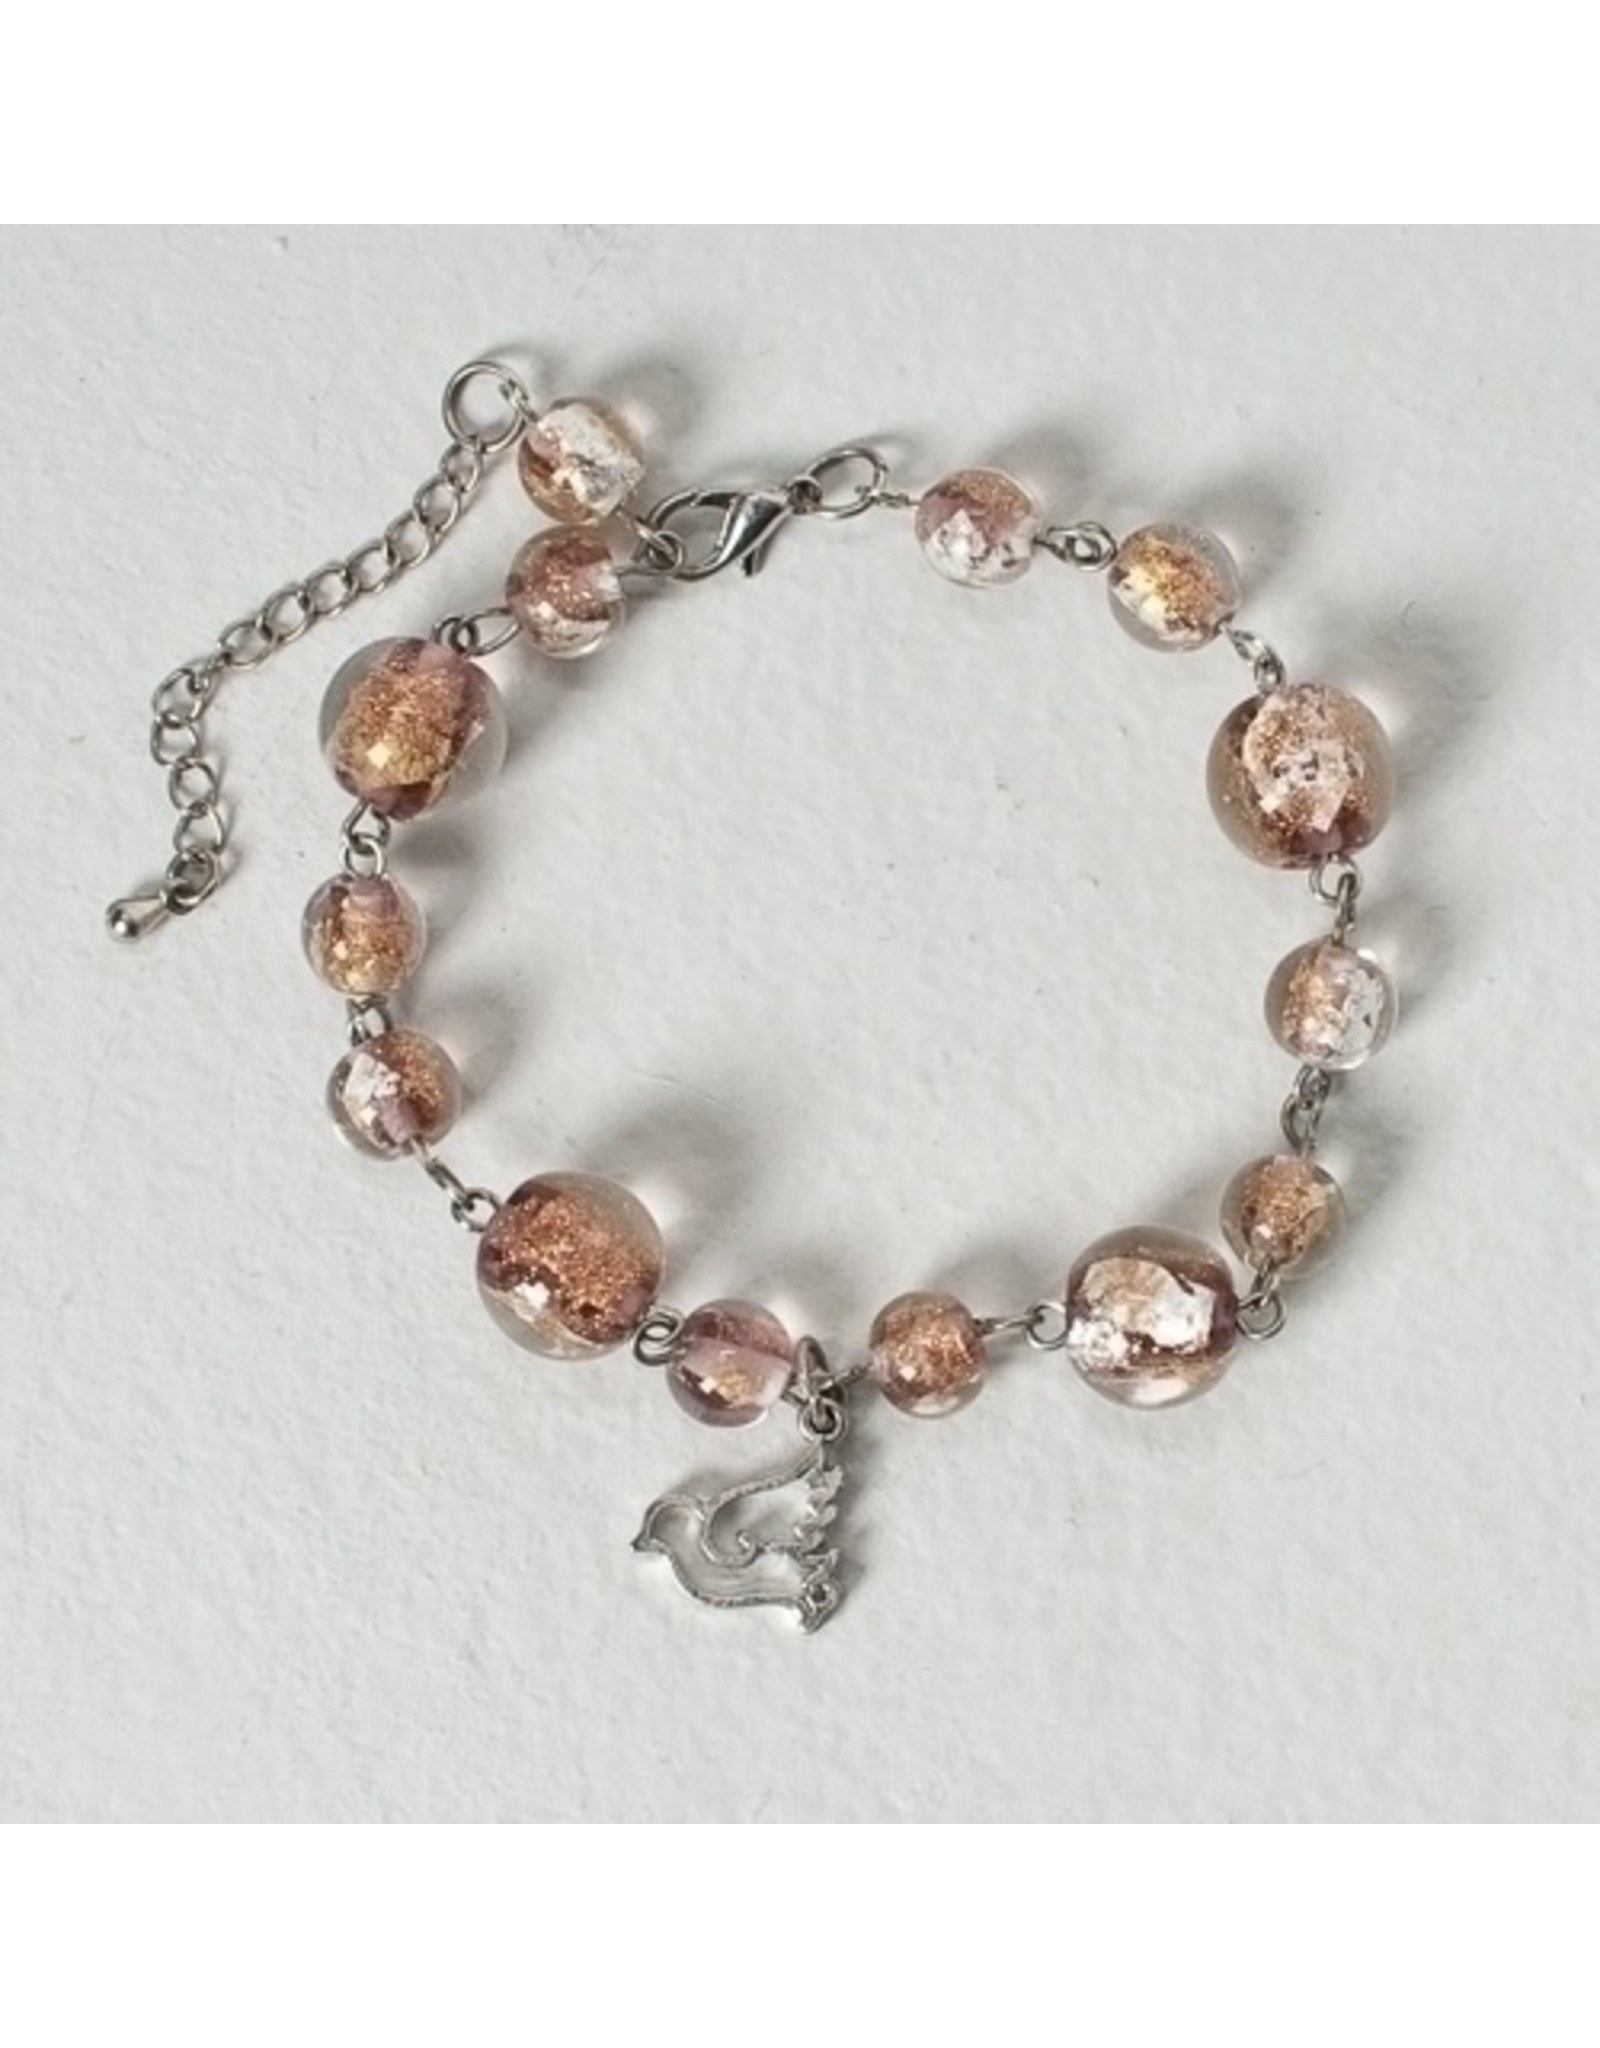 Confirmation Bracelet with Dove Charm & Glass Beads